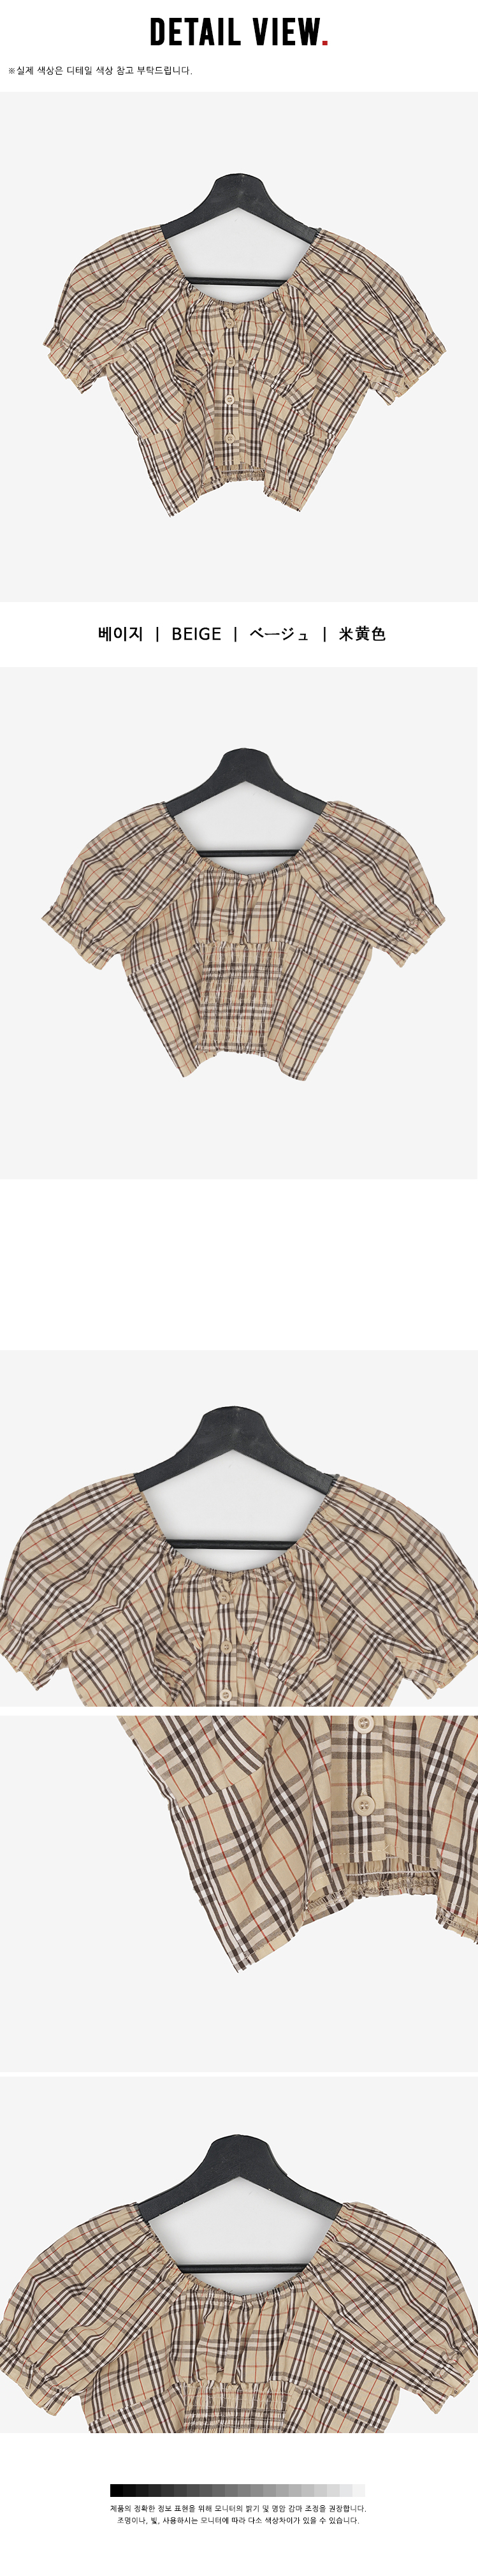 Verbrine check cropped blouse